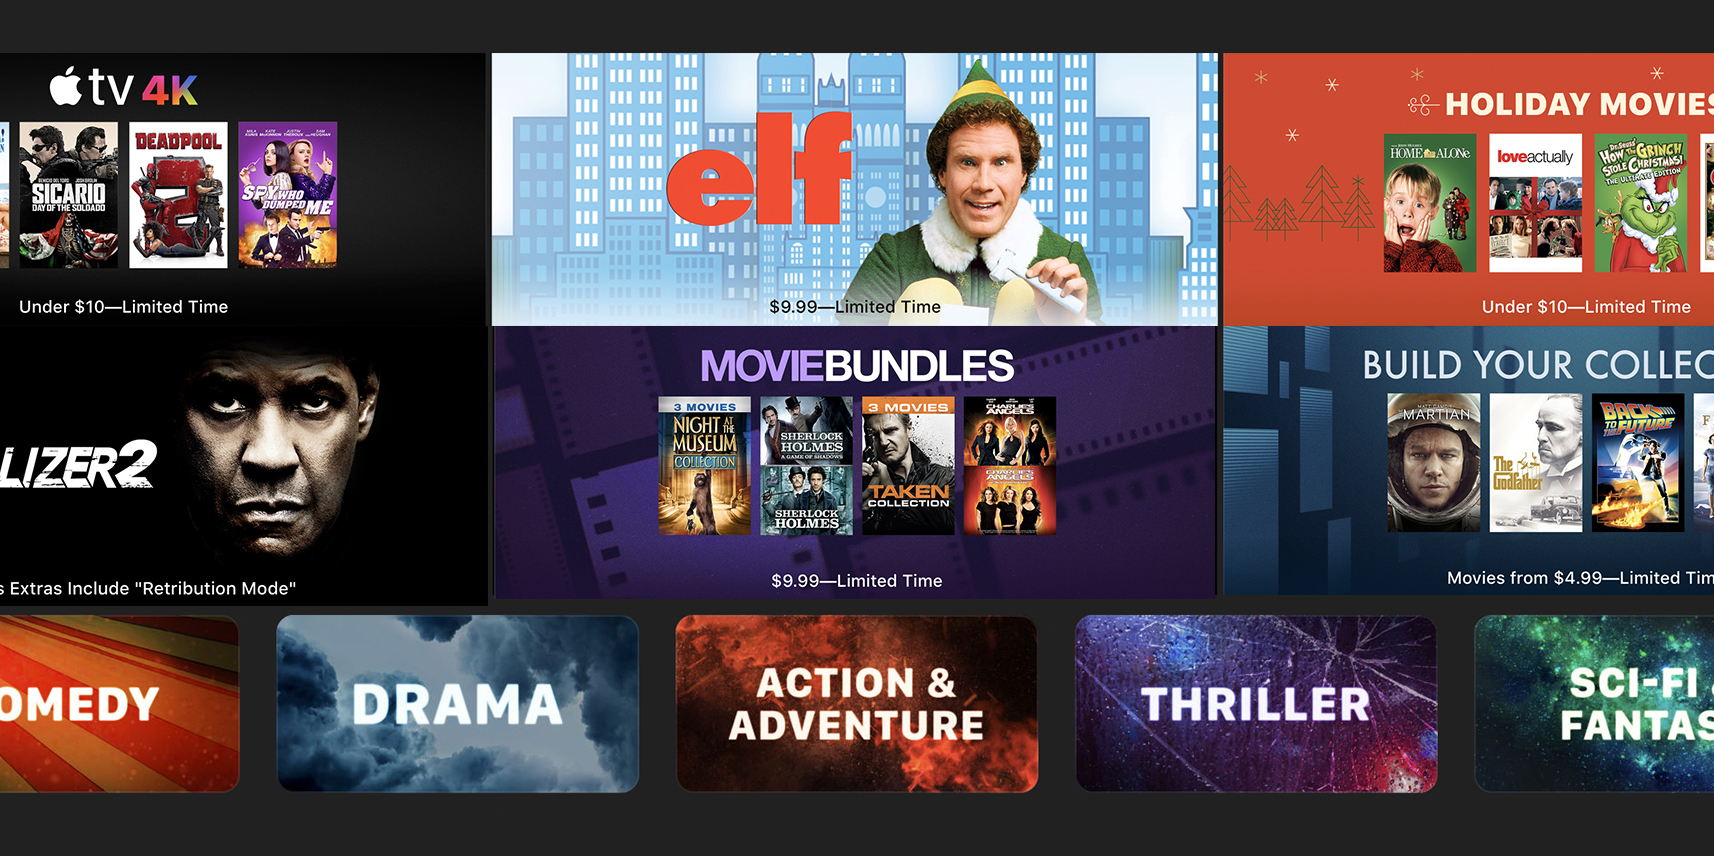 iTunes Black Friday Movie Sale: Bundles from $10, 4K as low as $5, holiday films, much more